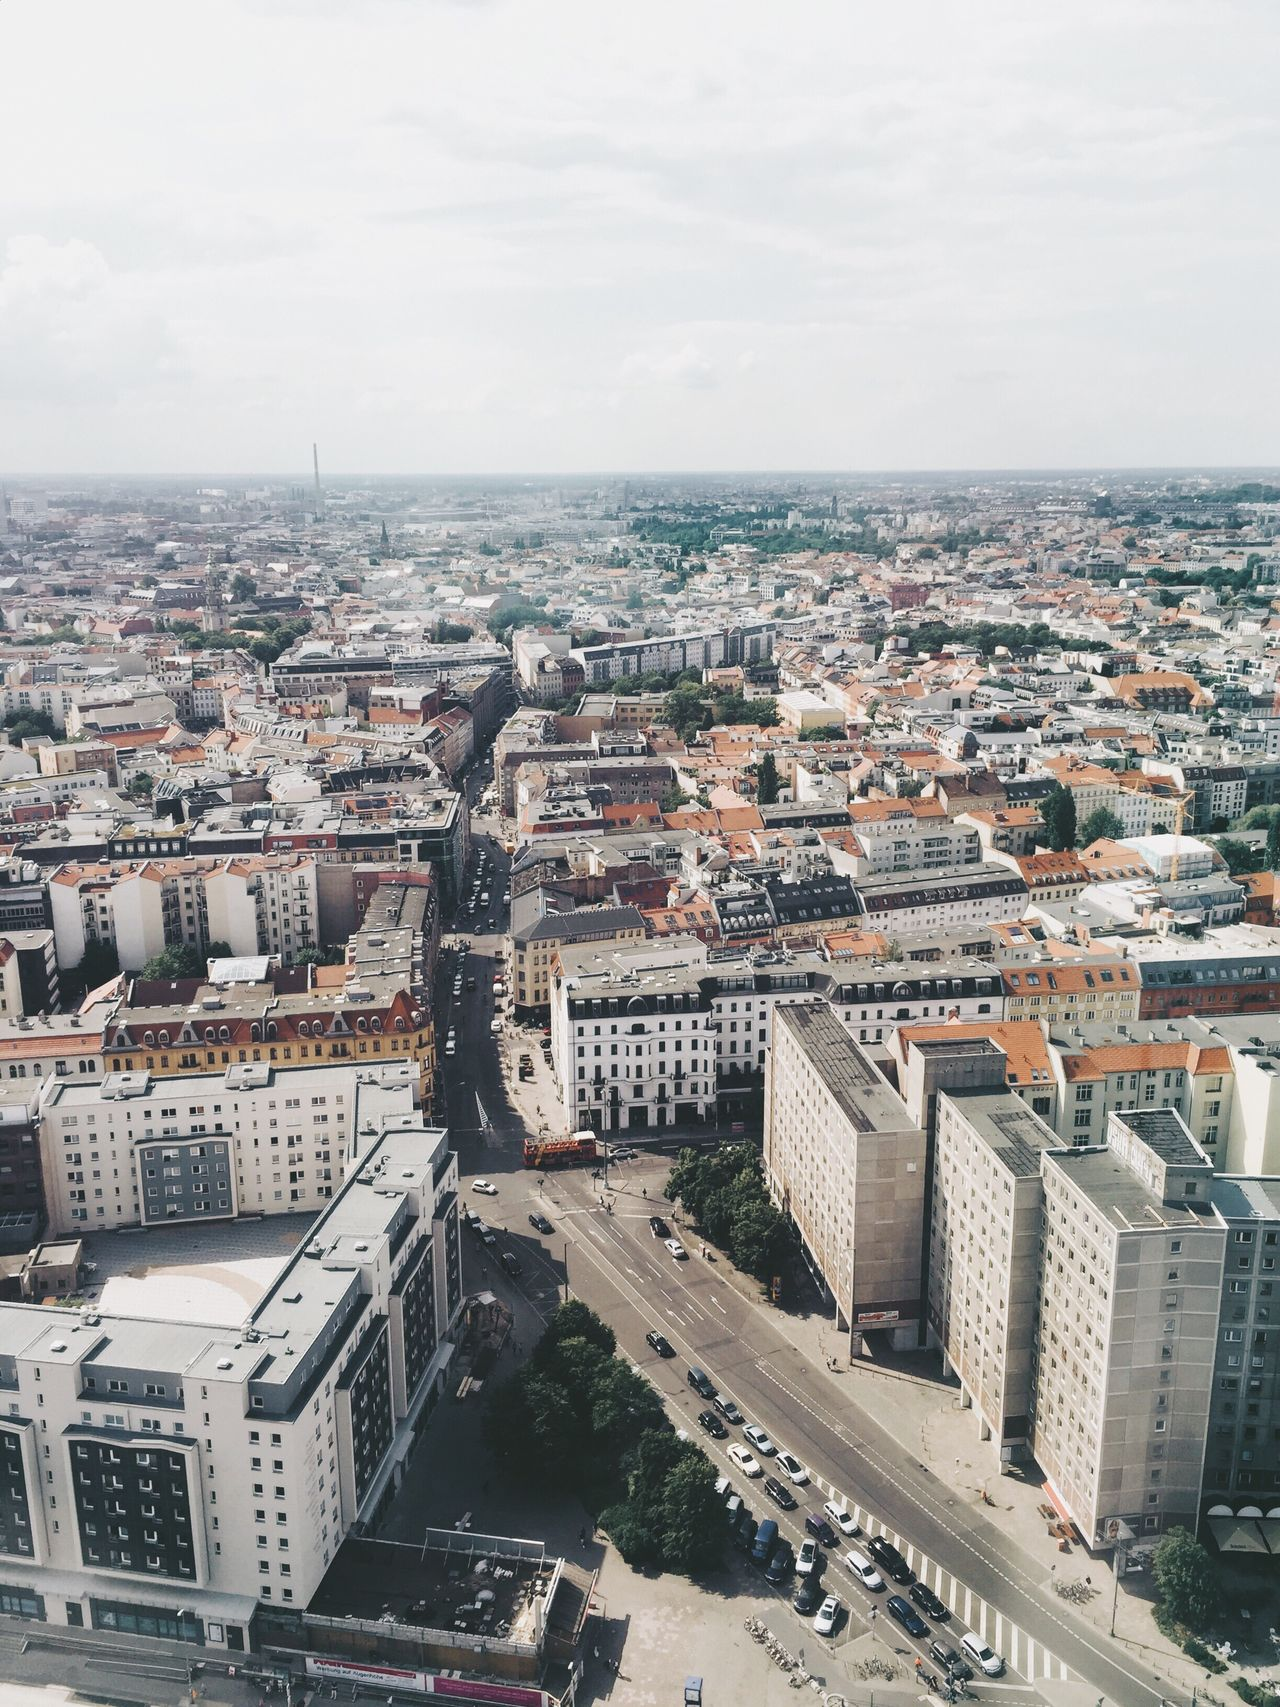 Berlin Cityscape Architecture Water Building Exterior High Angle View City Built Structure Outdoors Aerial View Sea No People Day Travel Destinations Horizon Over Water Nature Beauty In Nature